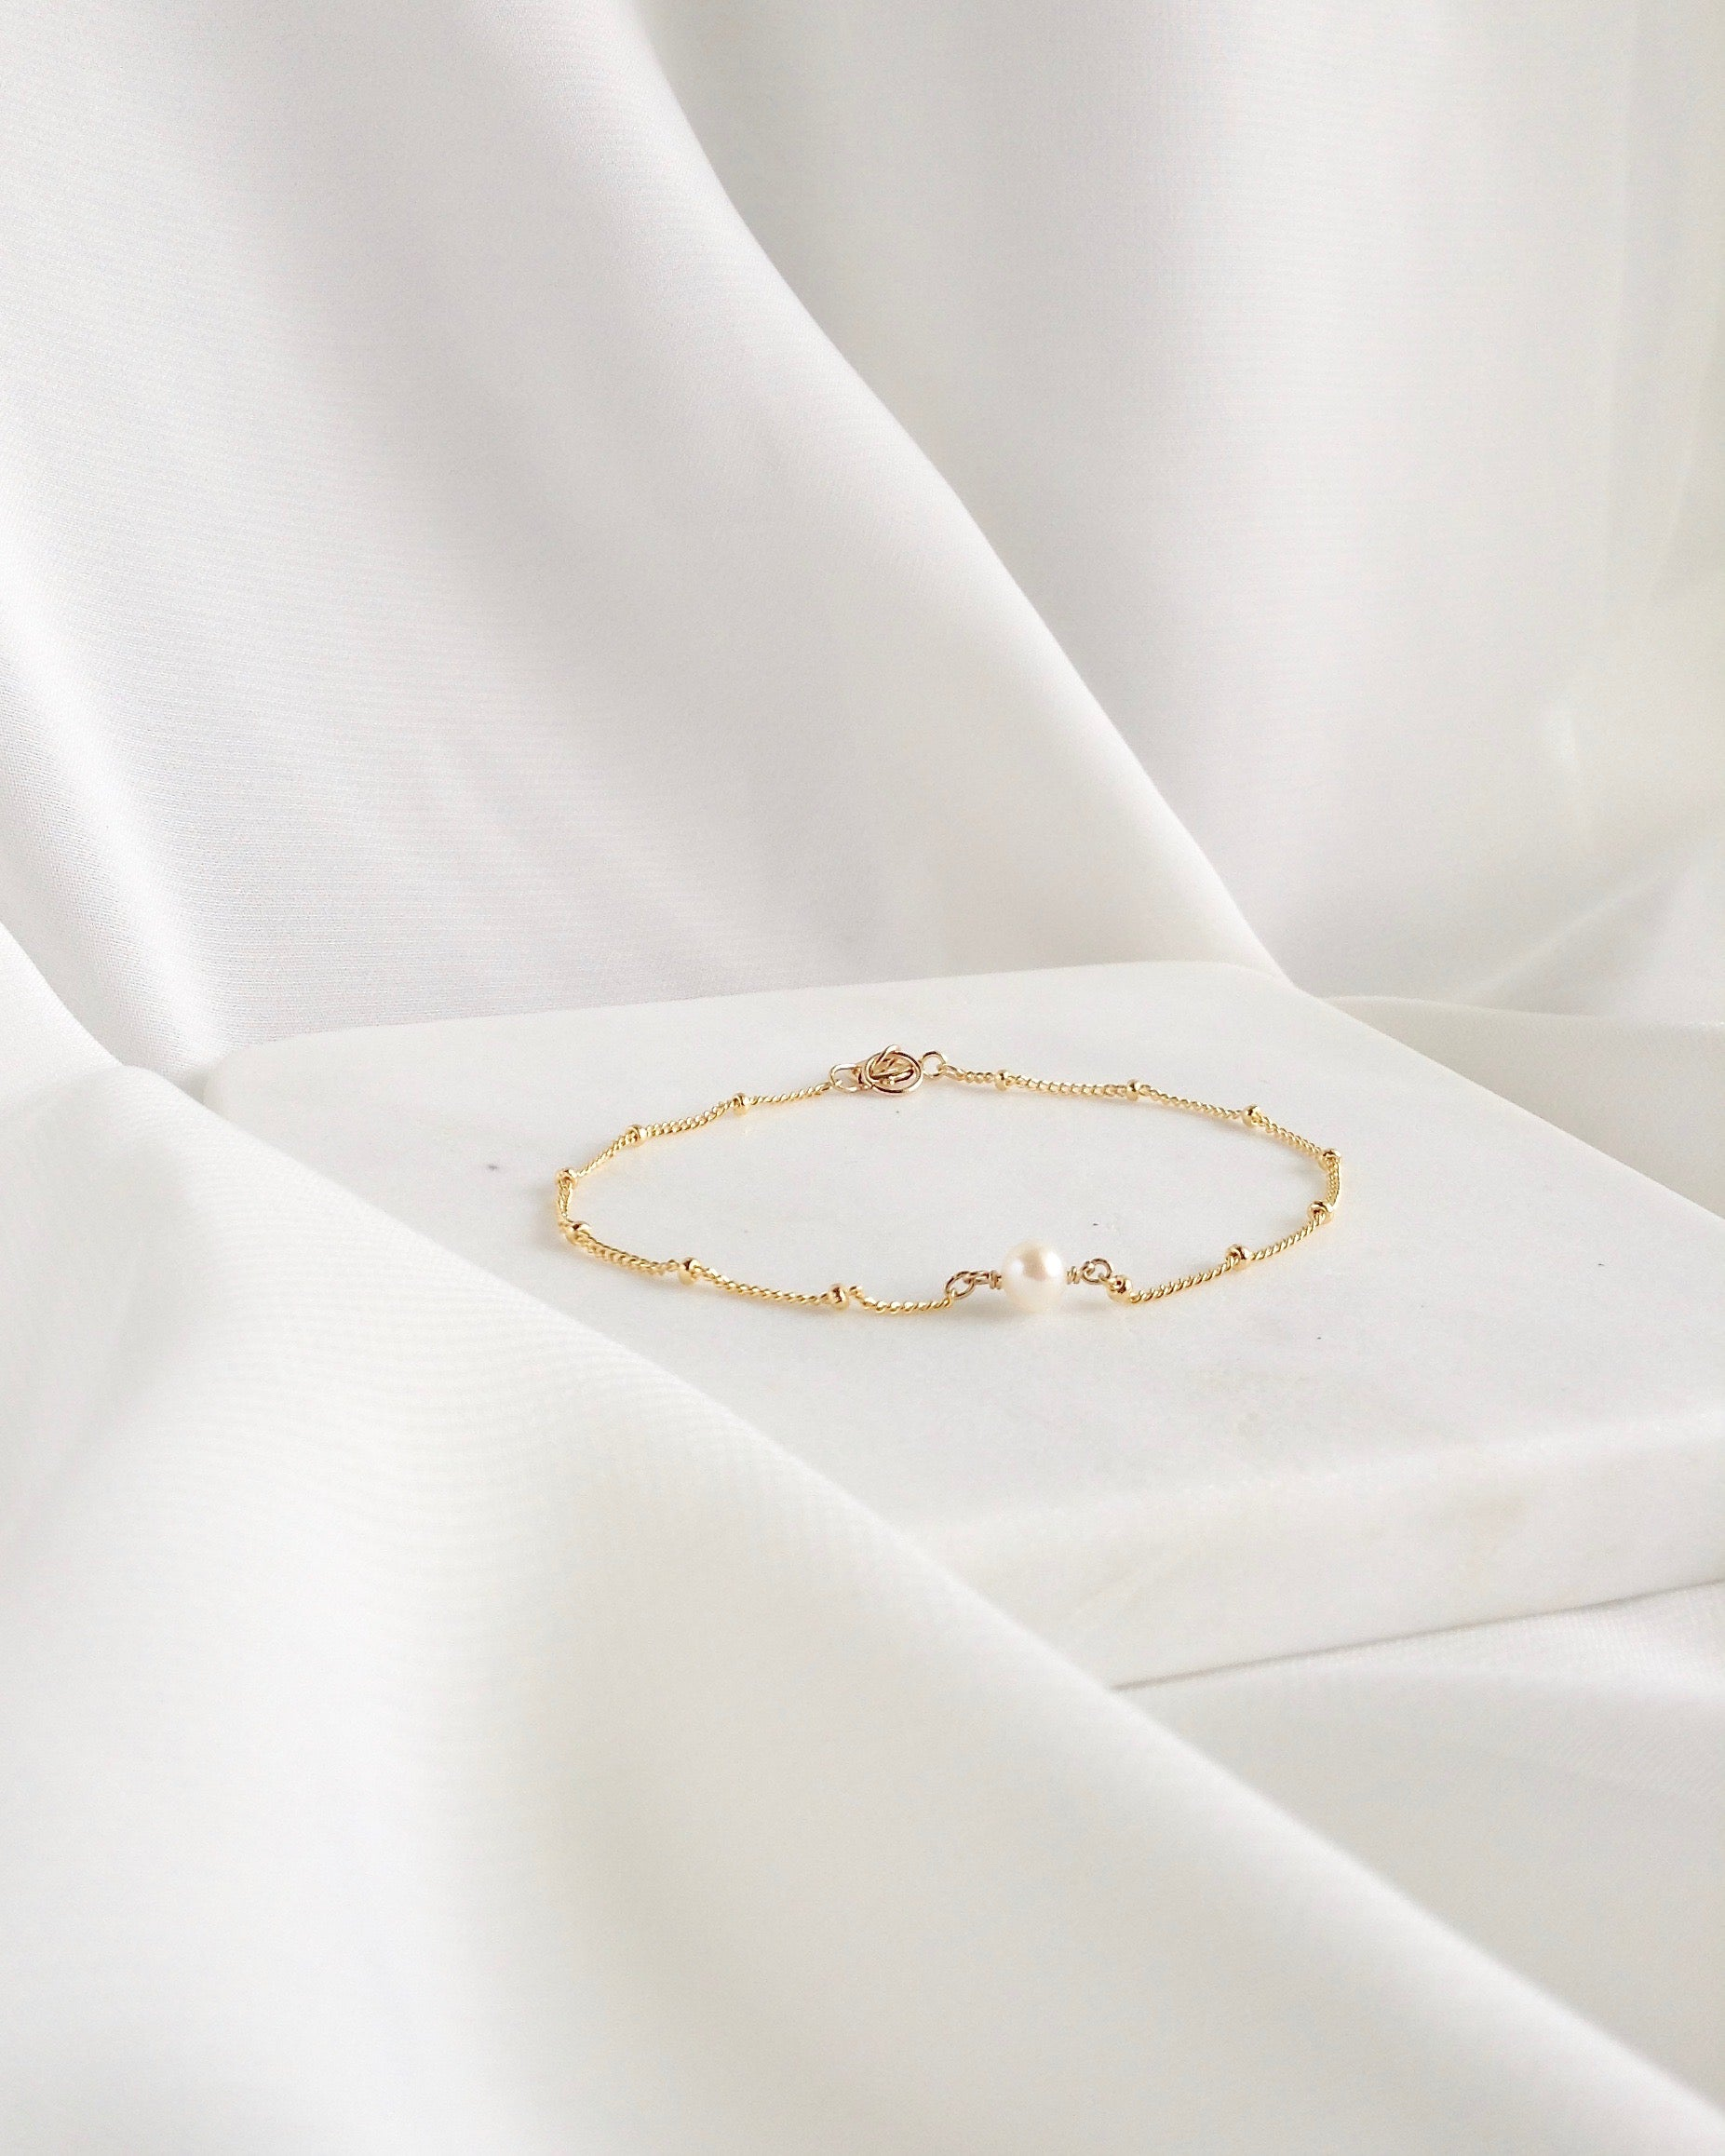 Dainty Minimalist Pearl Bracelet | Simple Everyday Bracelet | IB Jewelry